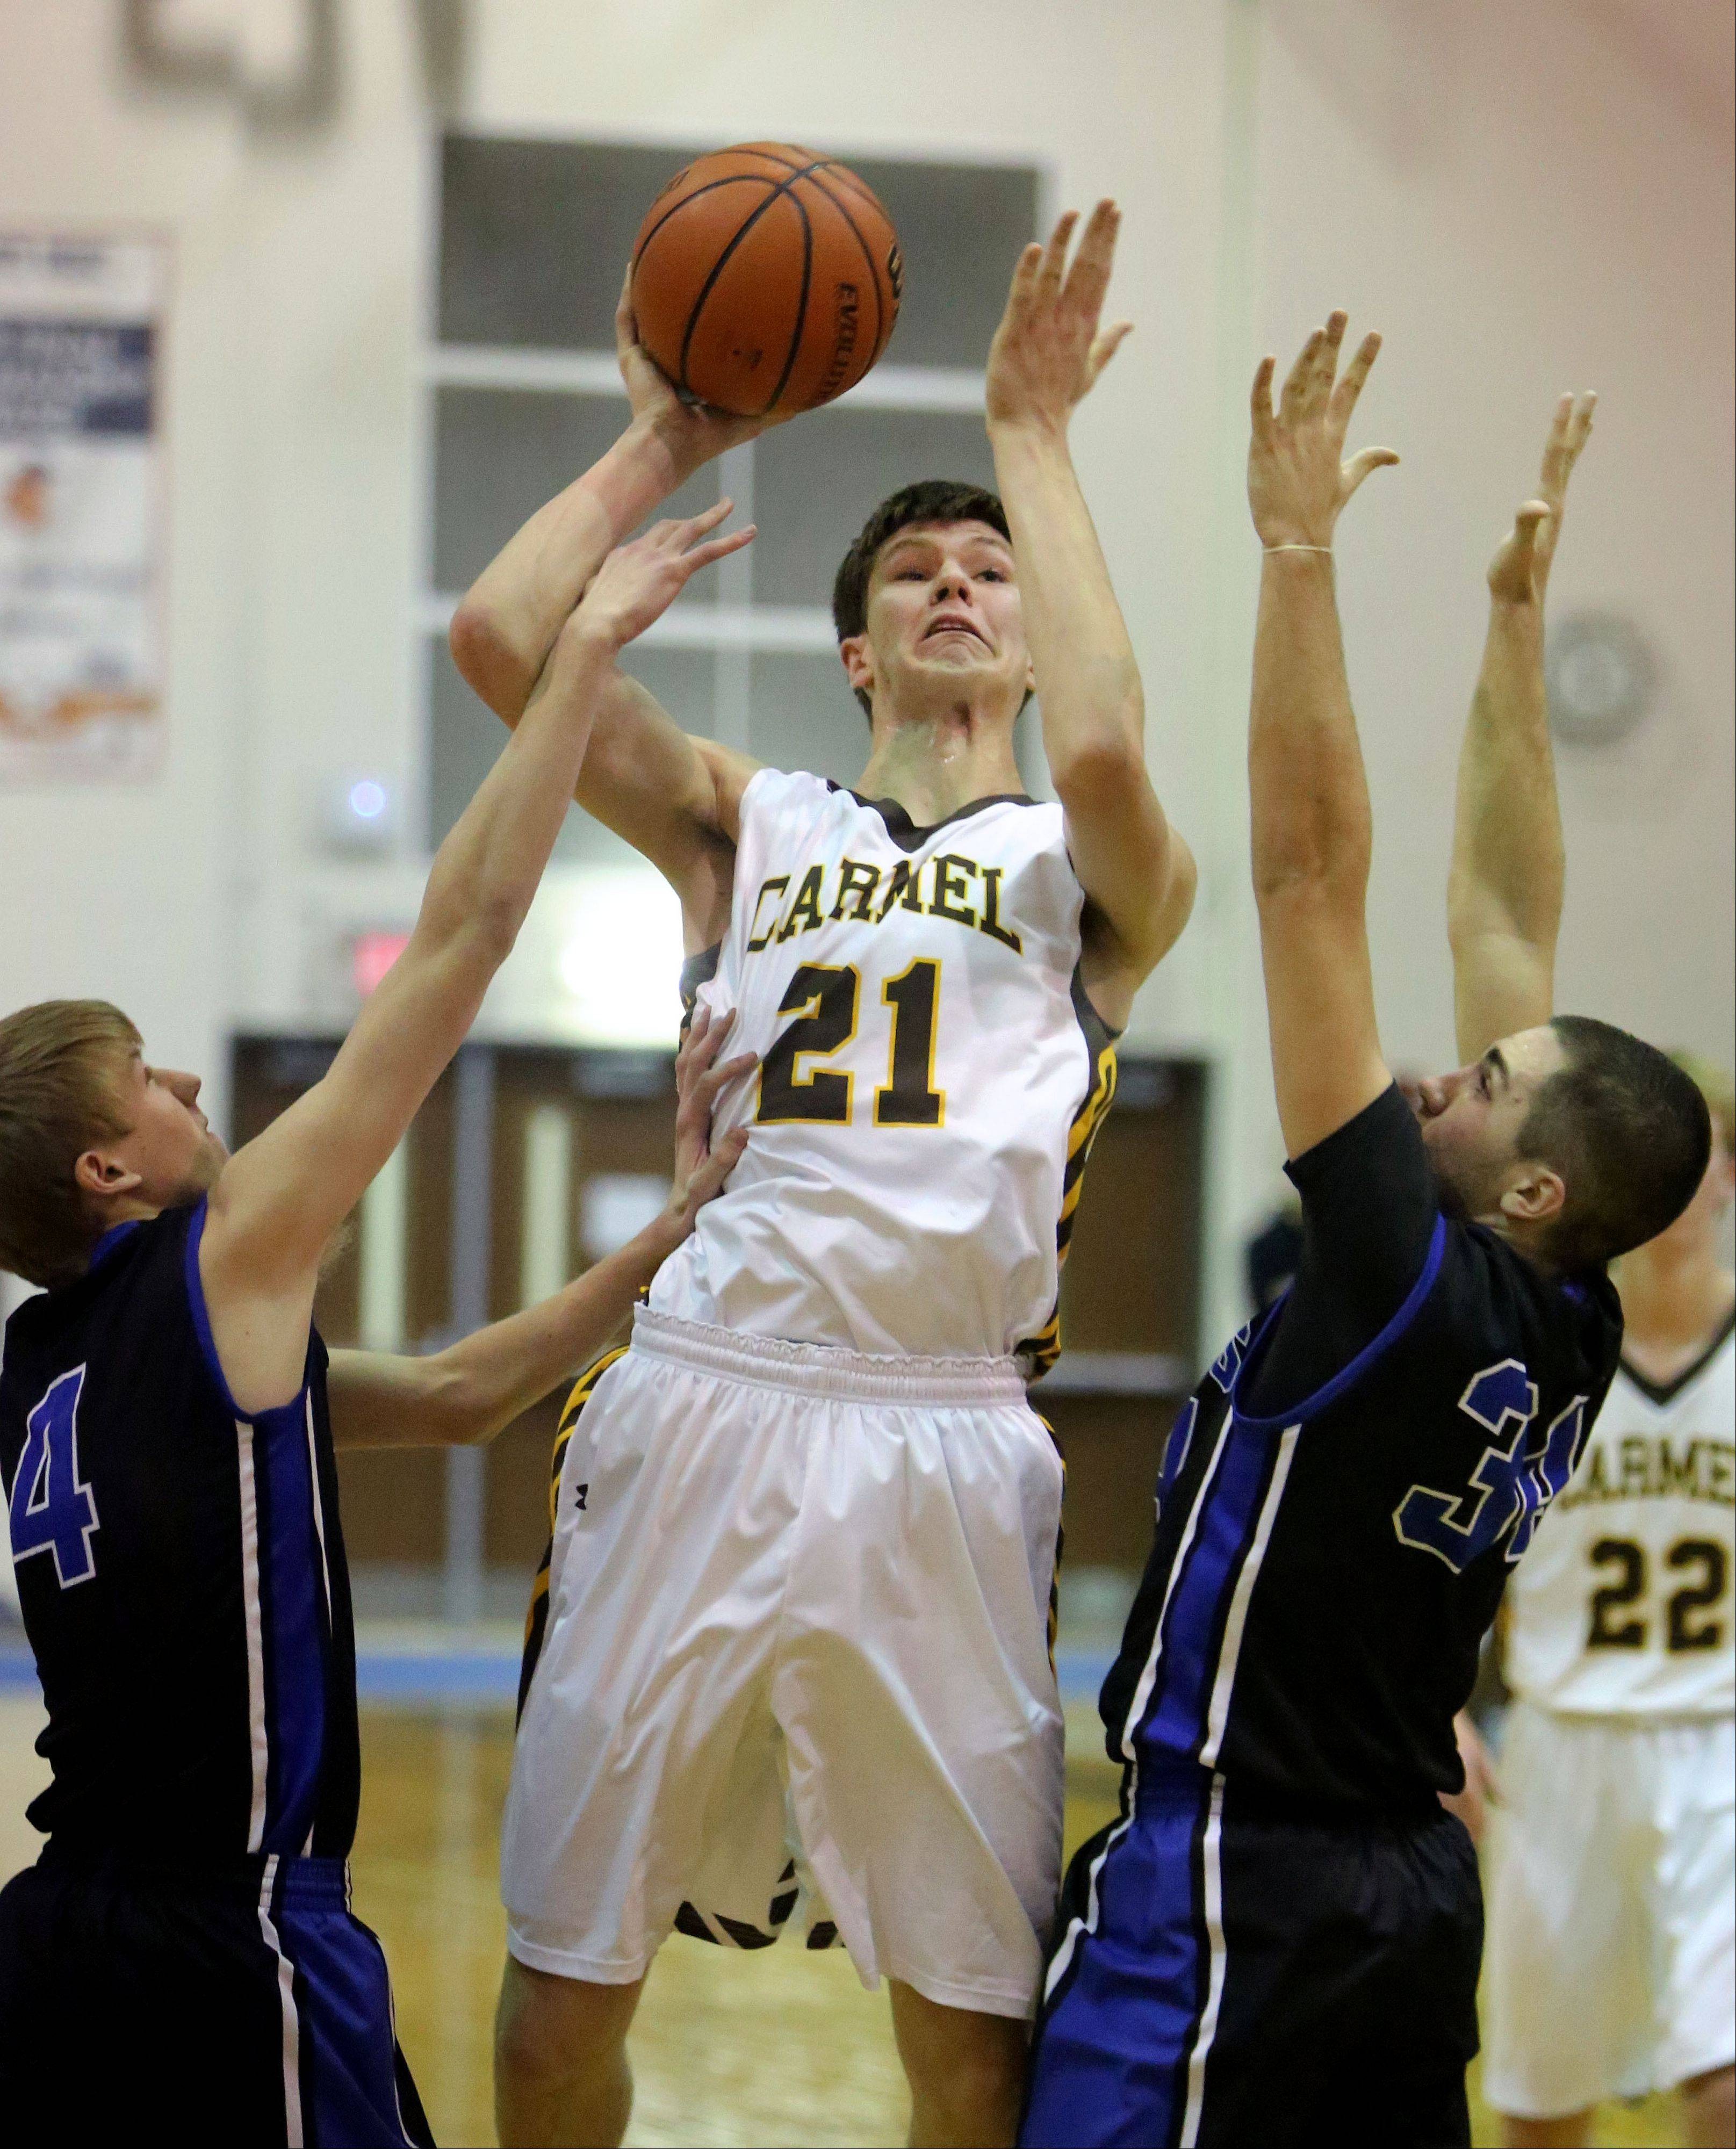 Carmel's Jack George (21) drives on Lake Zurich's Jeff Zahery, left, and Mike Travlos on Monday at Lake Zurich.